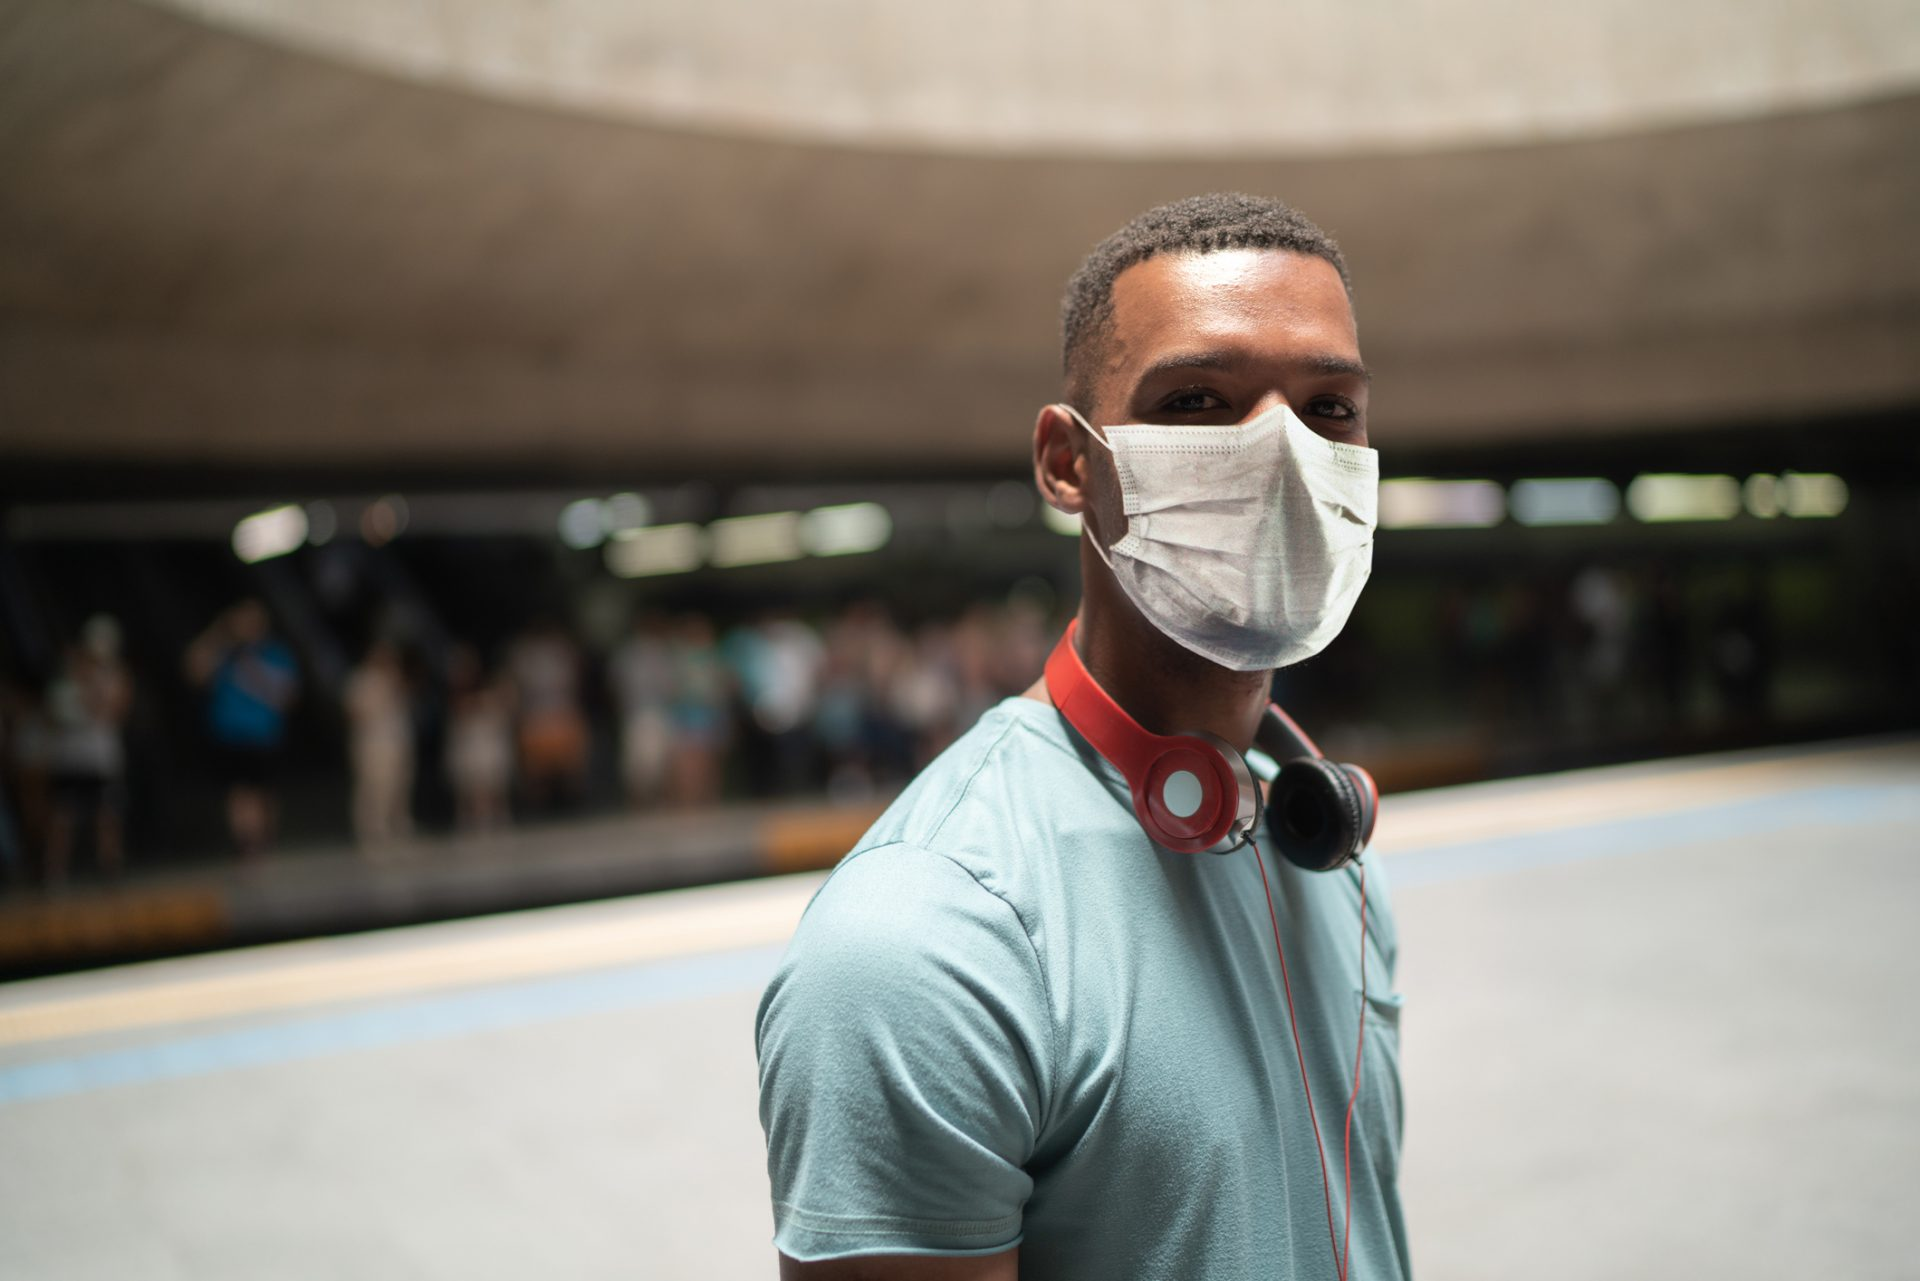 Portrait of a young man using protective mask at metro station.